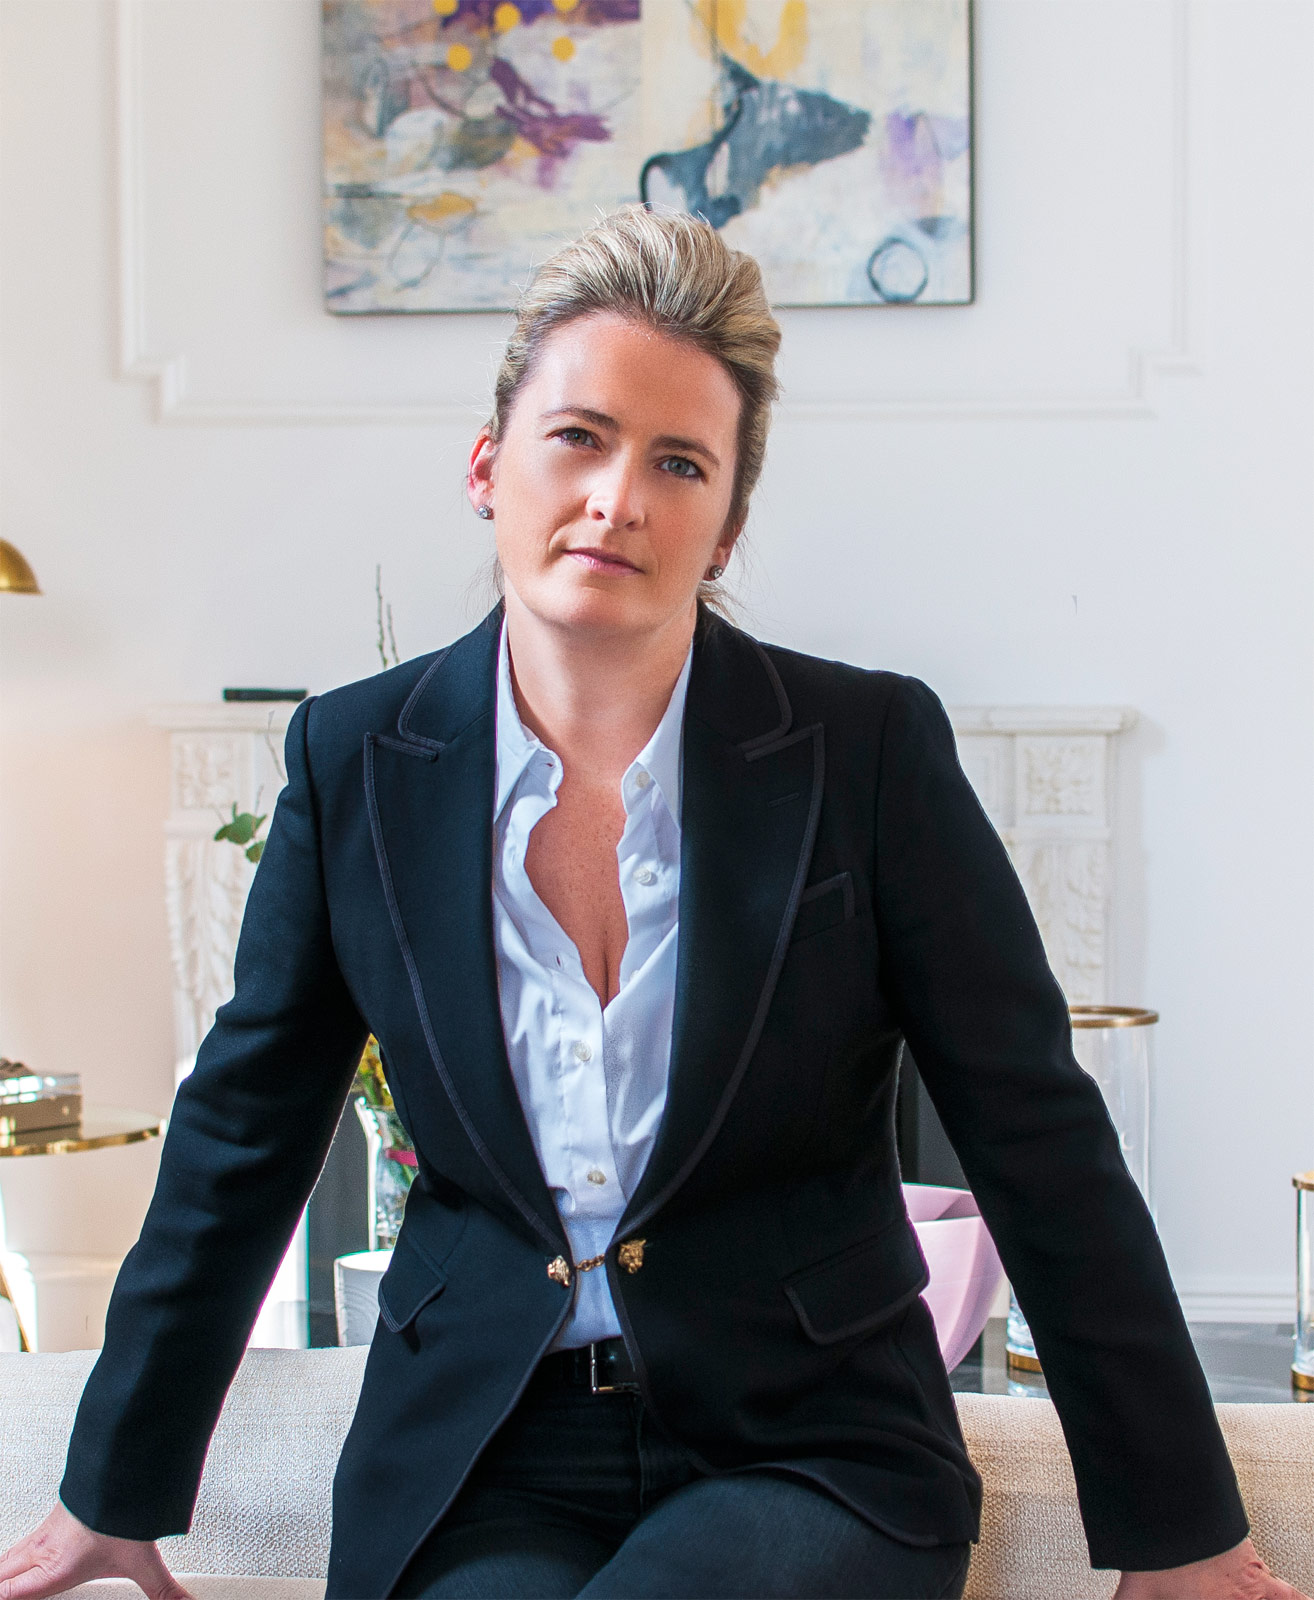 Mathilde Allibe, CEO of Secretcape Interior Design